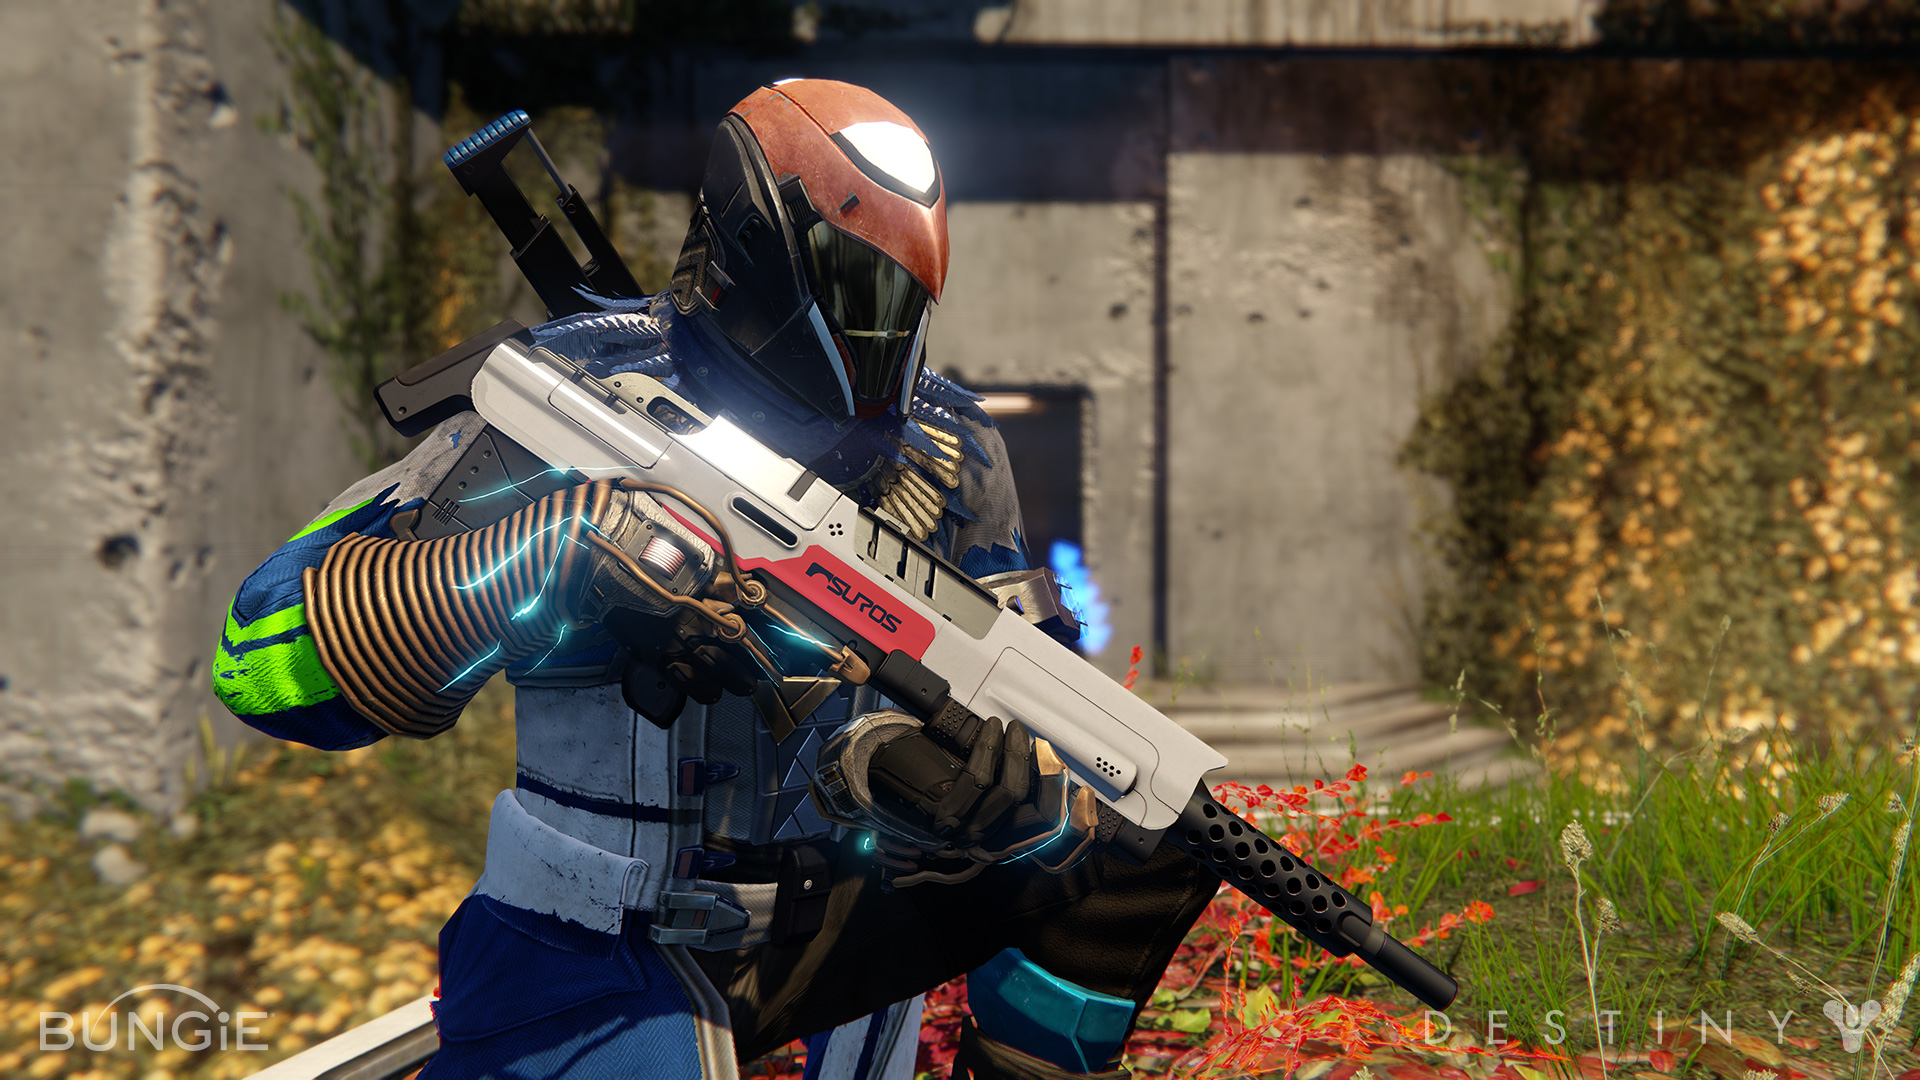 Destiny: The Taken King pre-orders include new exclusive weapons and more